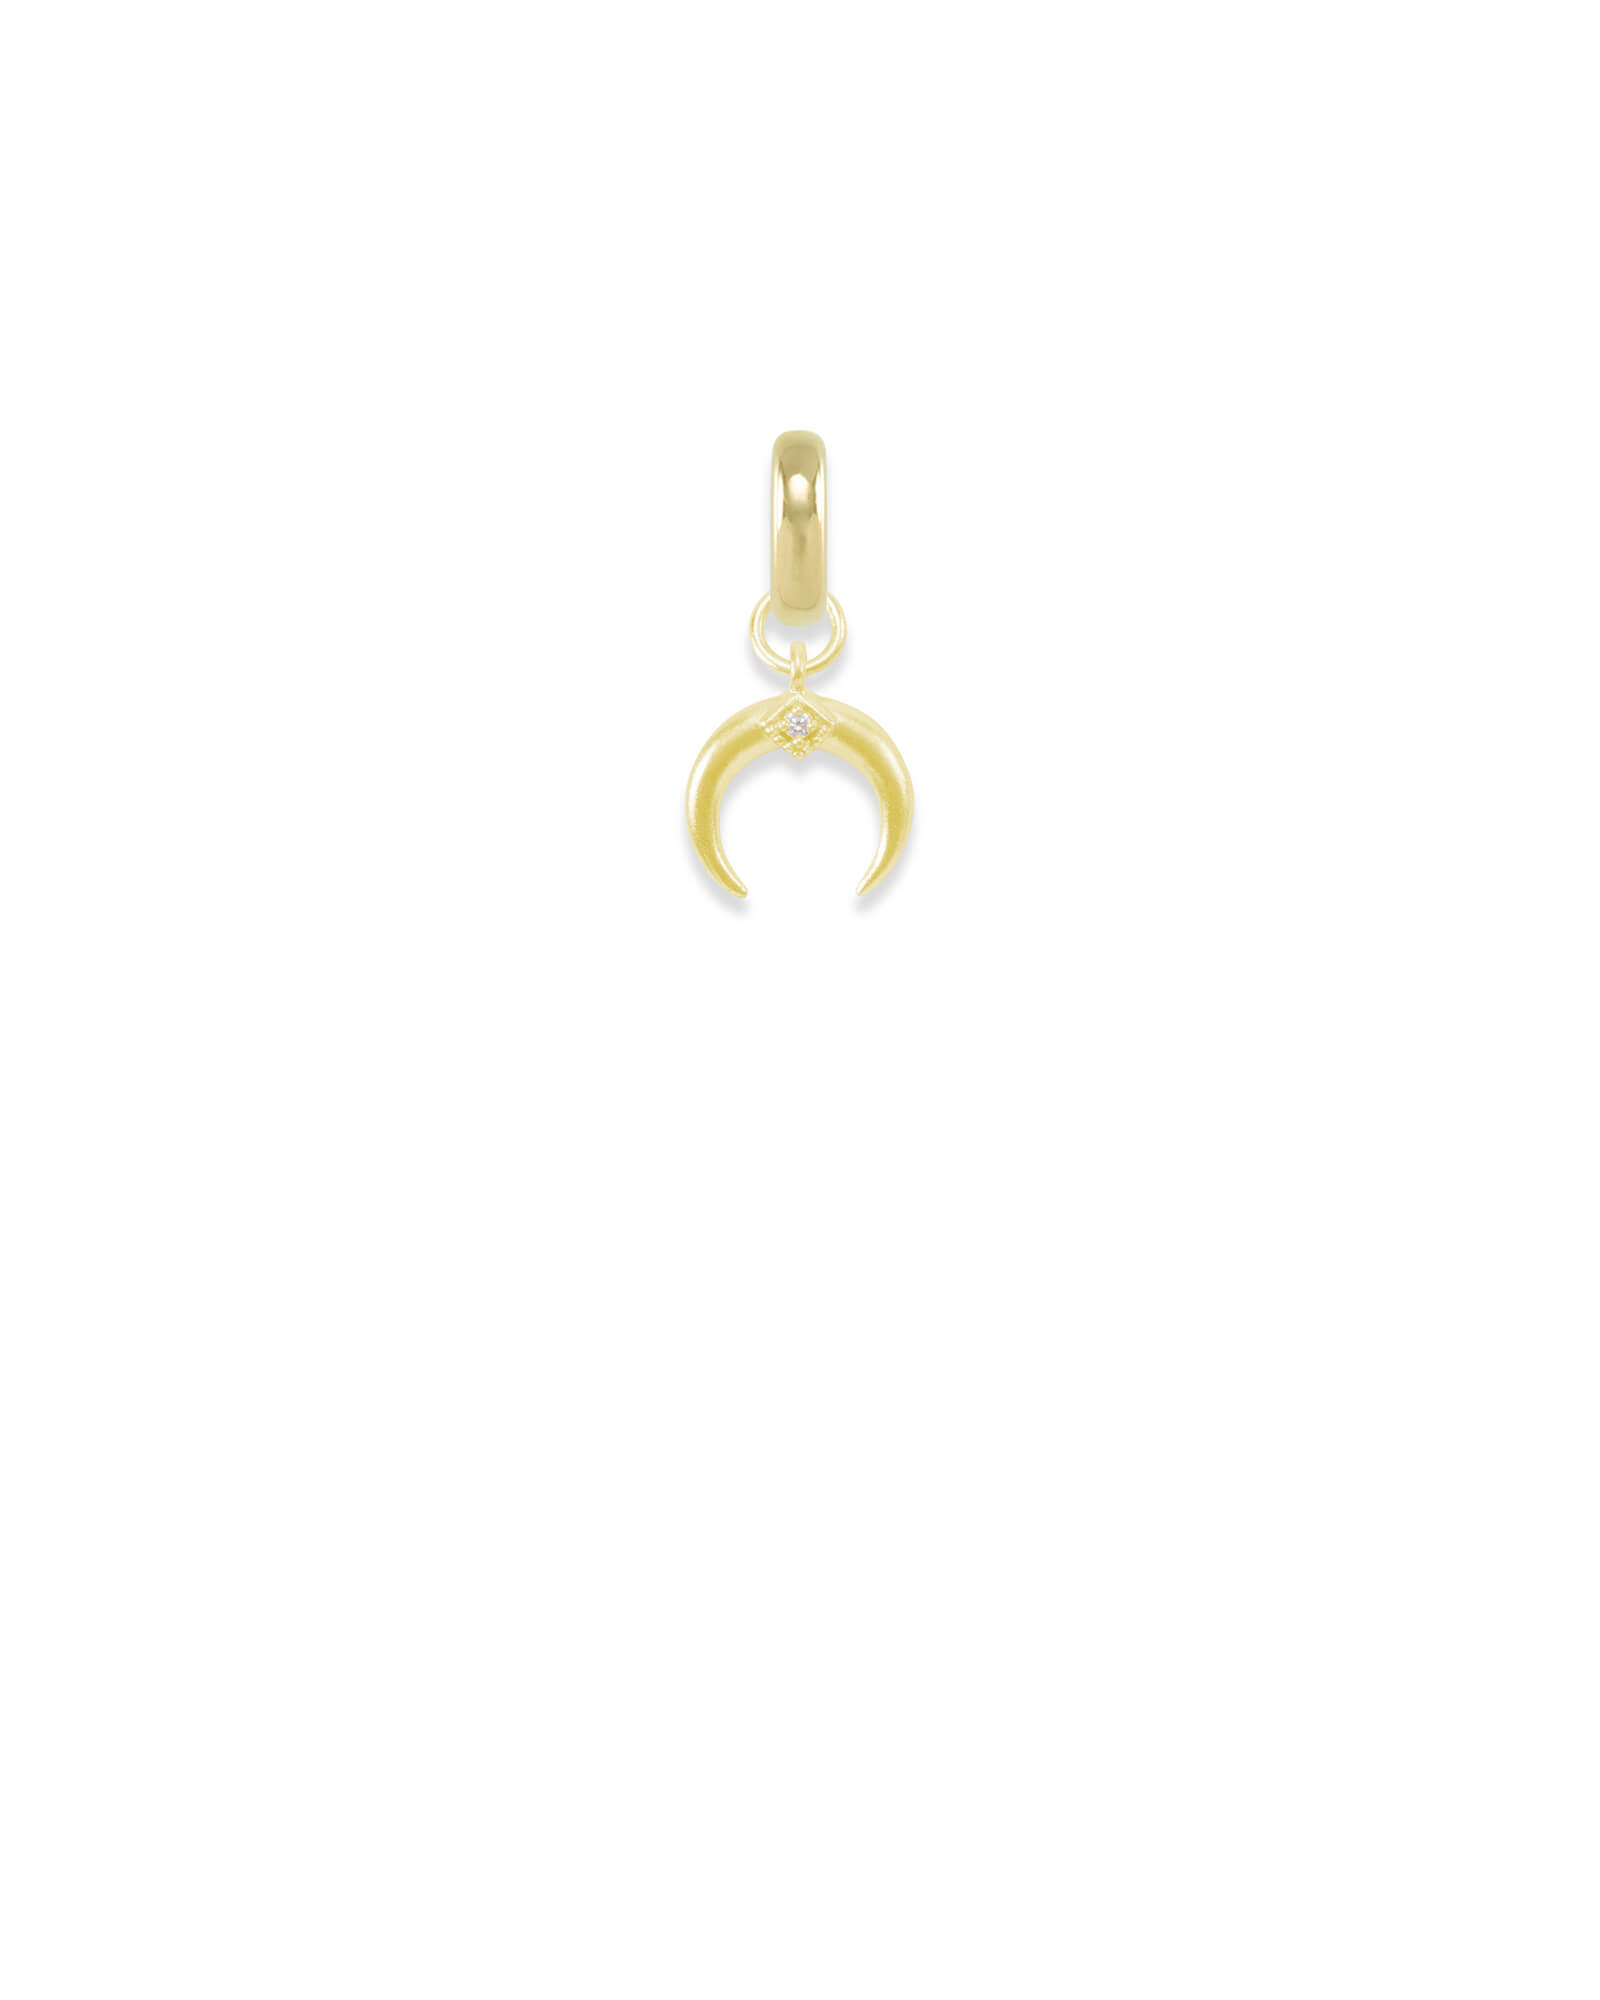 Oklahoma Bison Horns Charm in Gold